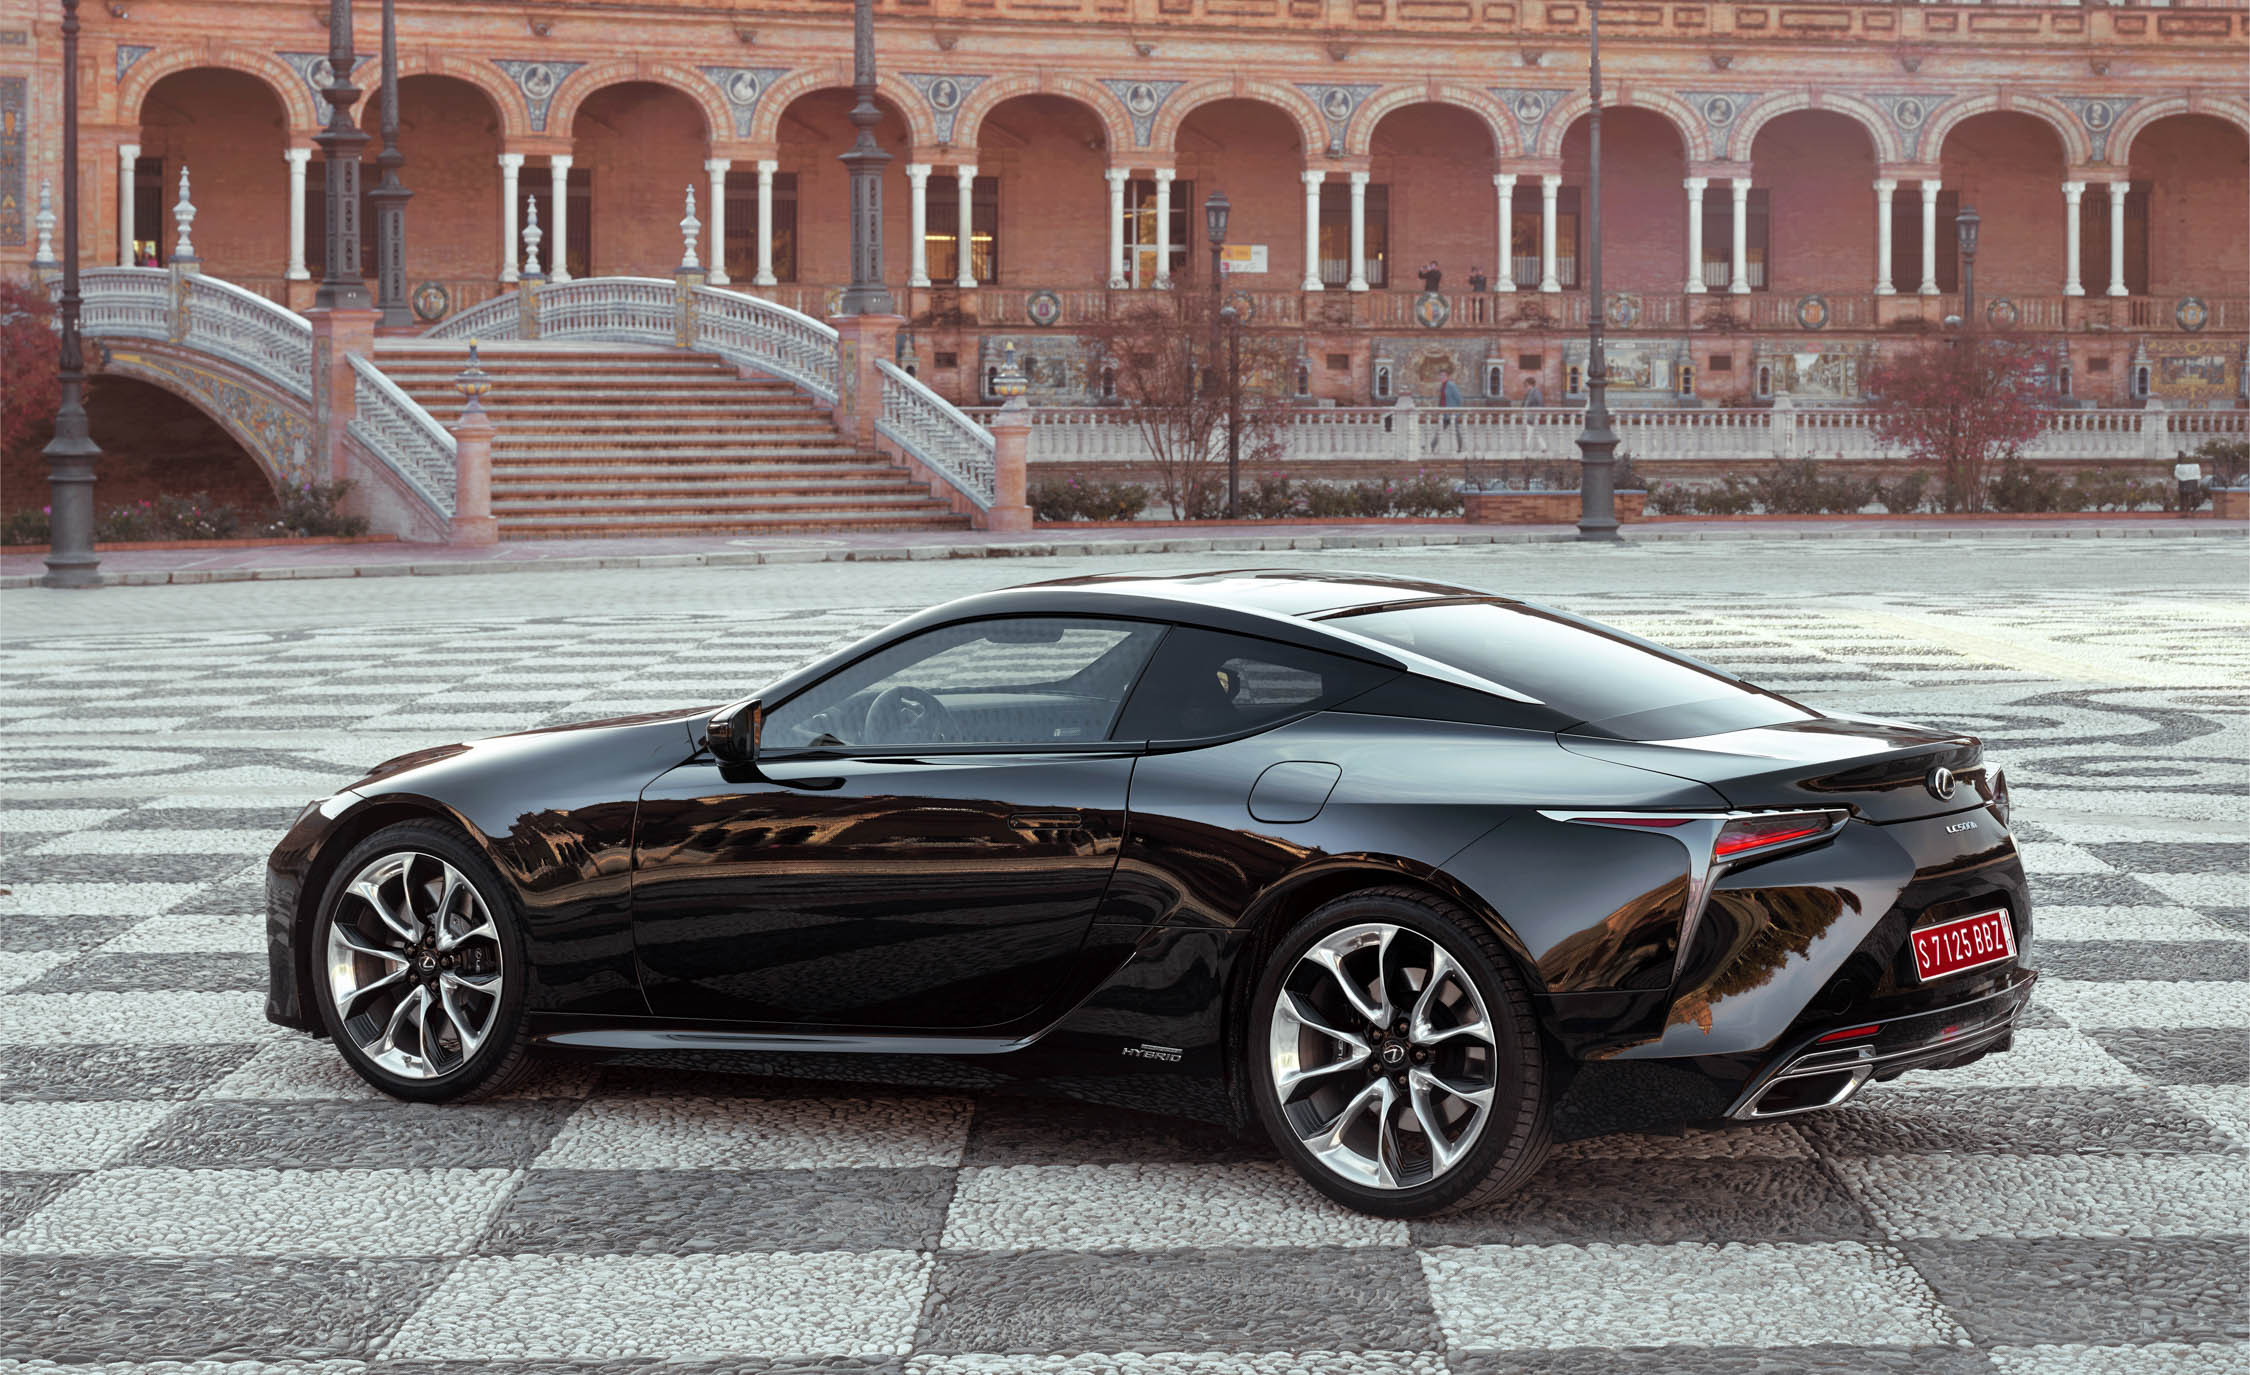 2018 Lexus Lc 500h Black Exterior Side And Rear (View 55 of 84)